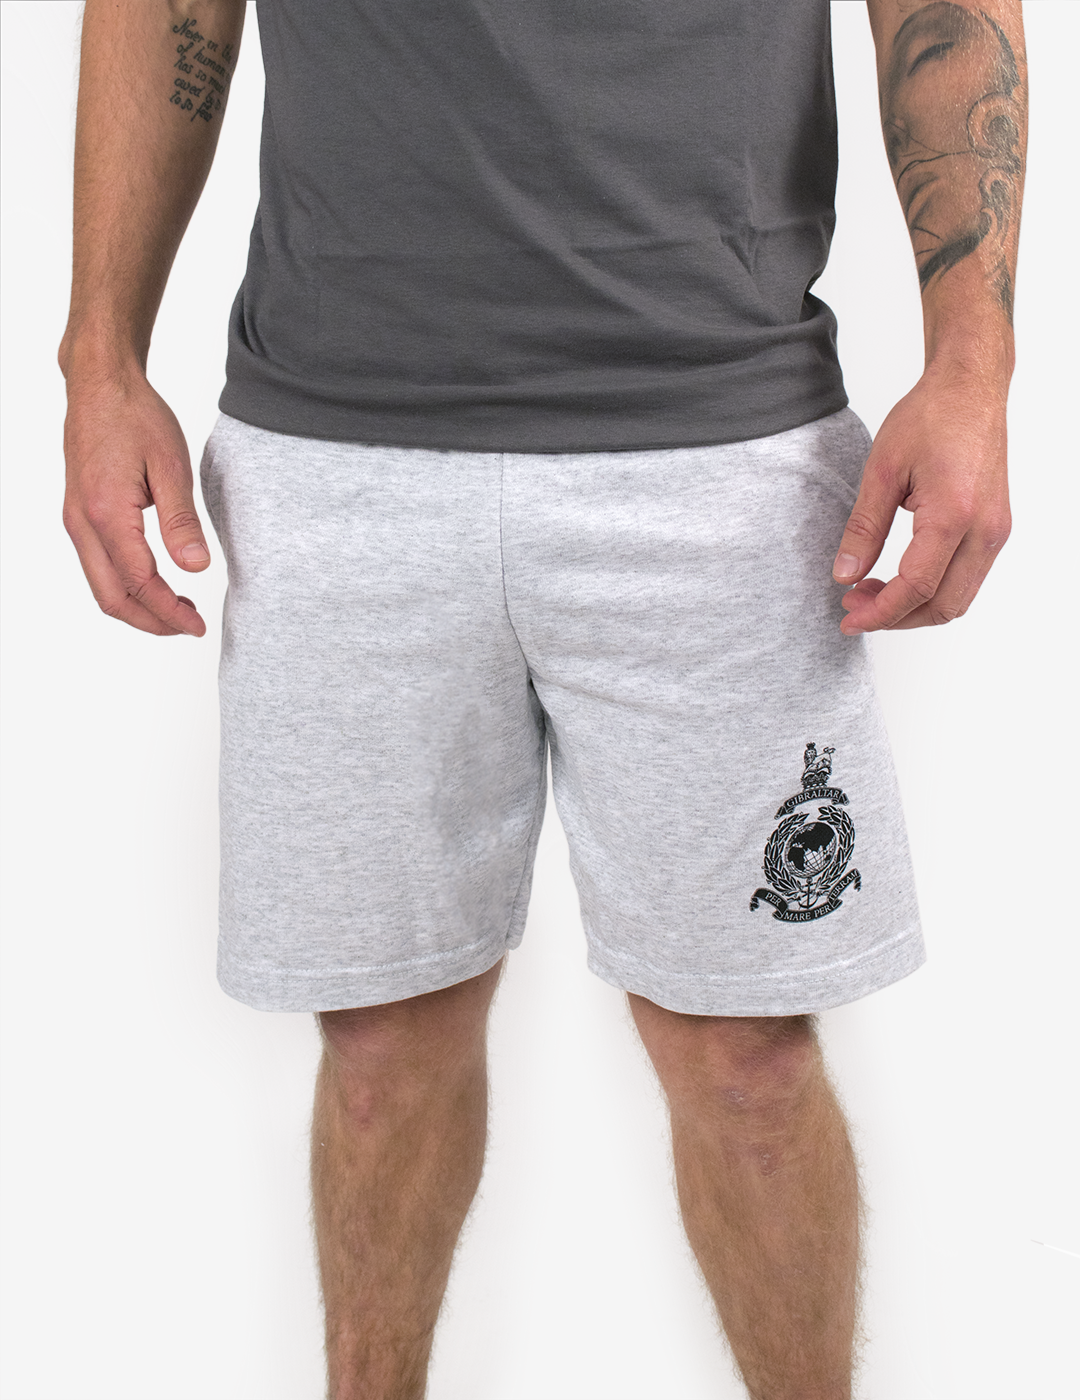 Basic Royal Marines Sweat Shorts - Grey